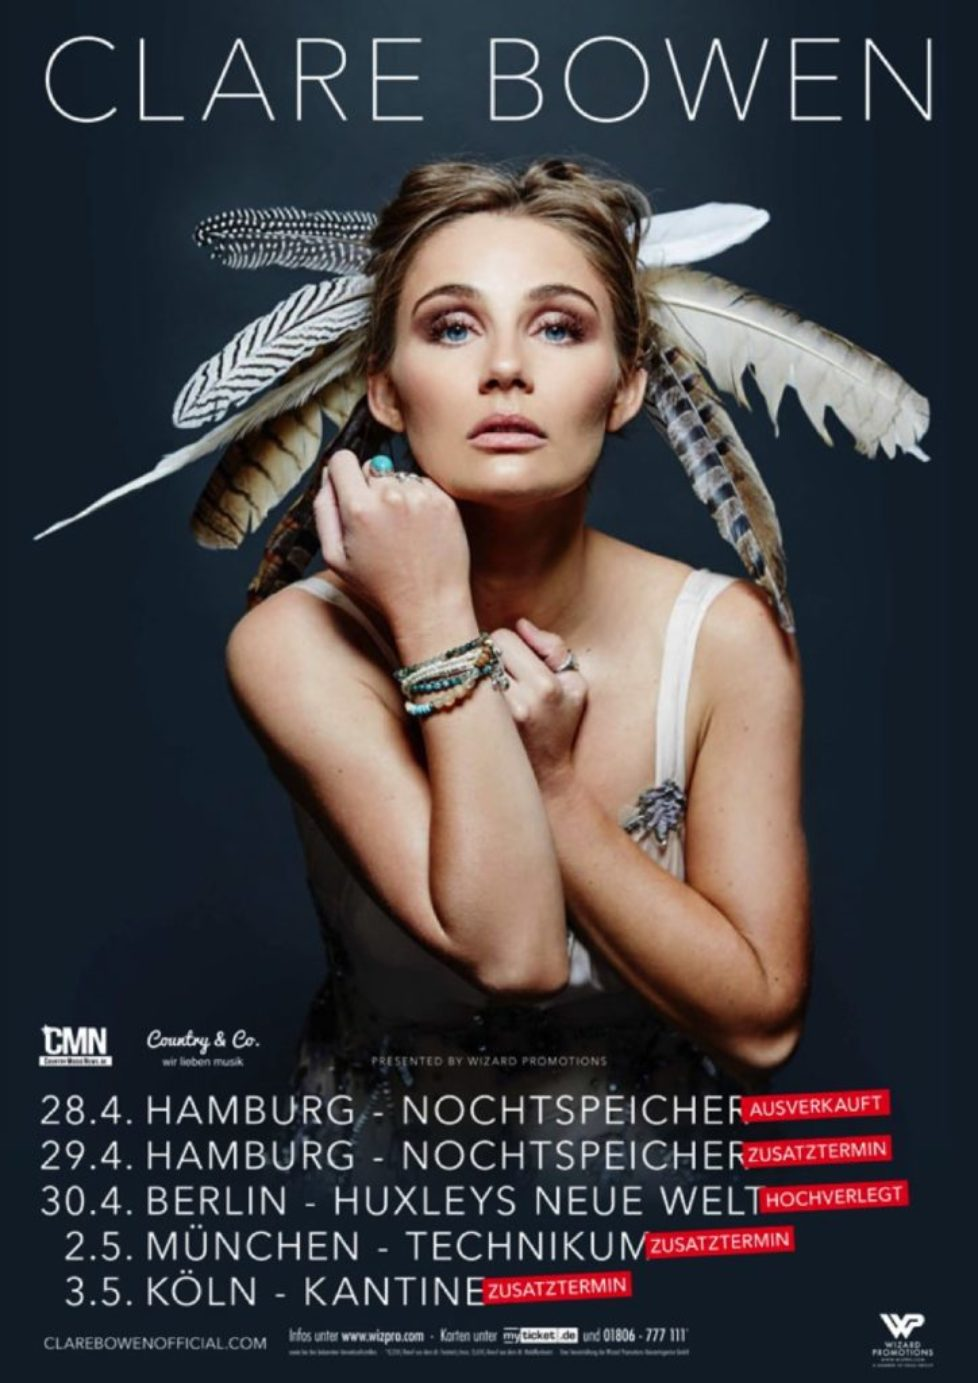 Clare-Bowen-Tour-Germany-Poster-02-px900